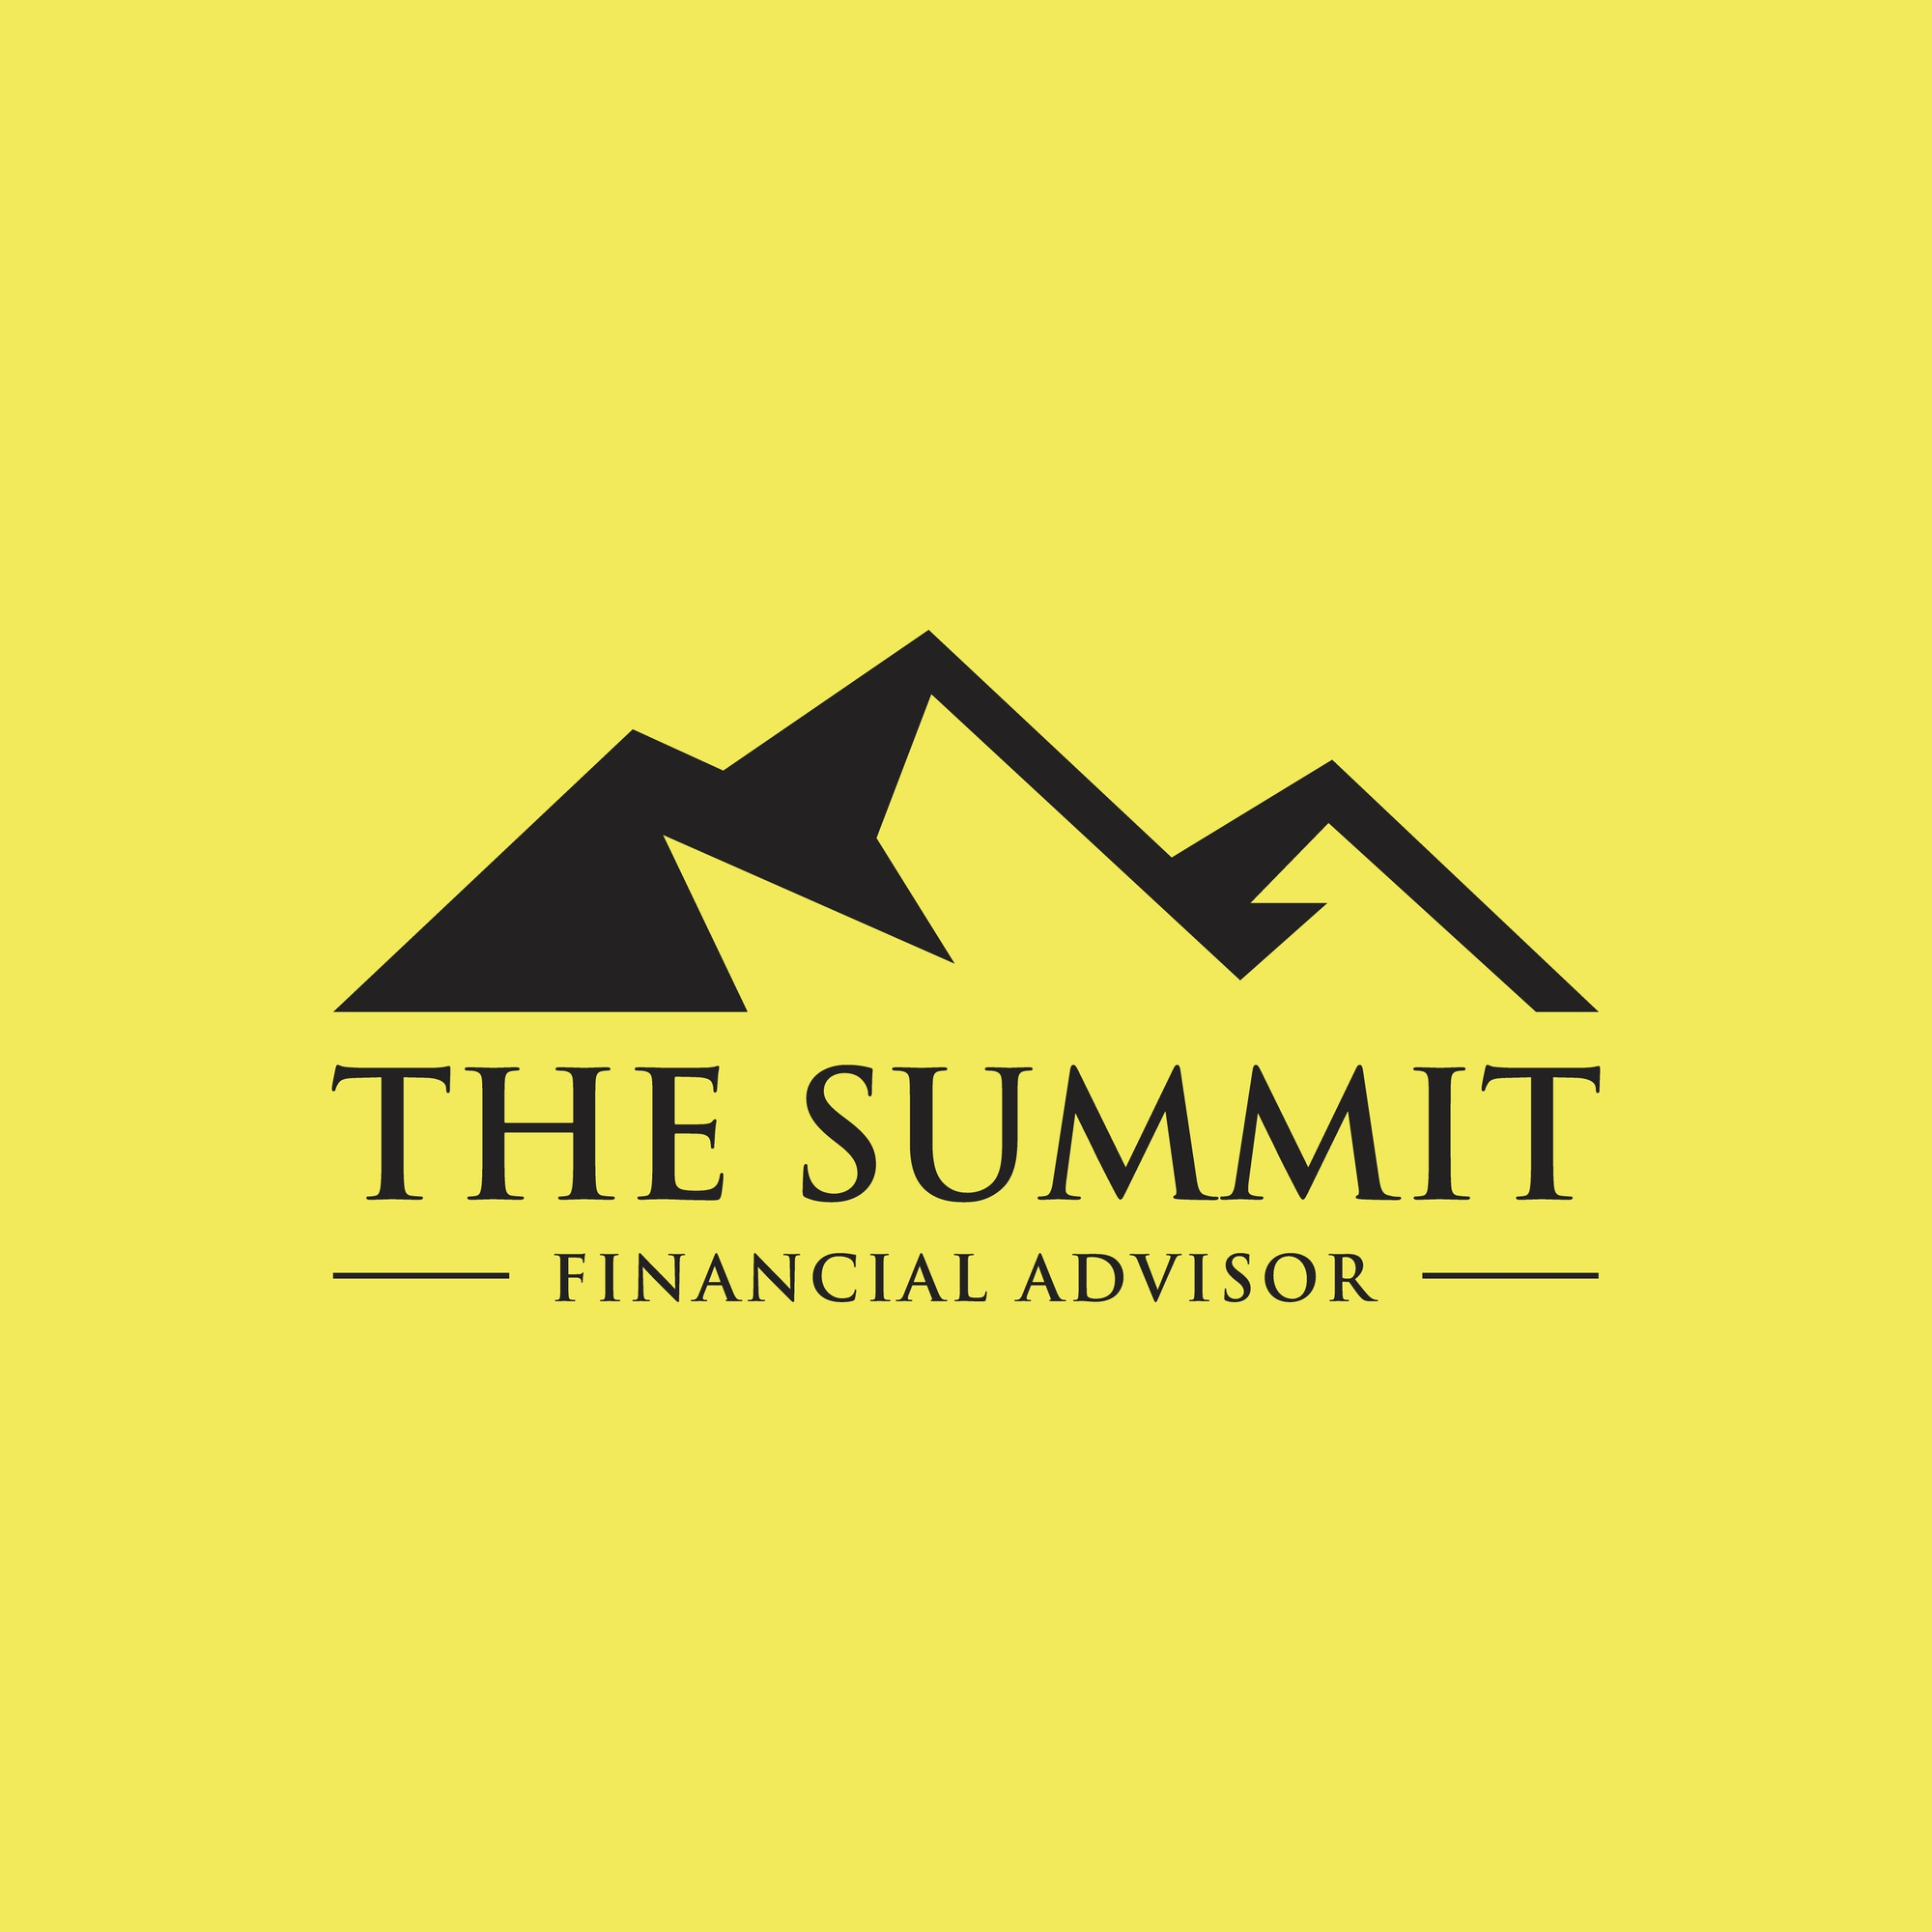 Mountain Summit Theme Symbol design